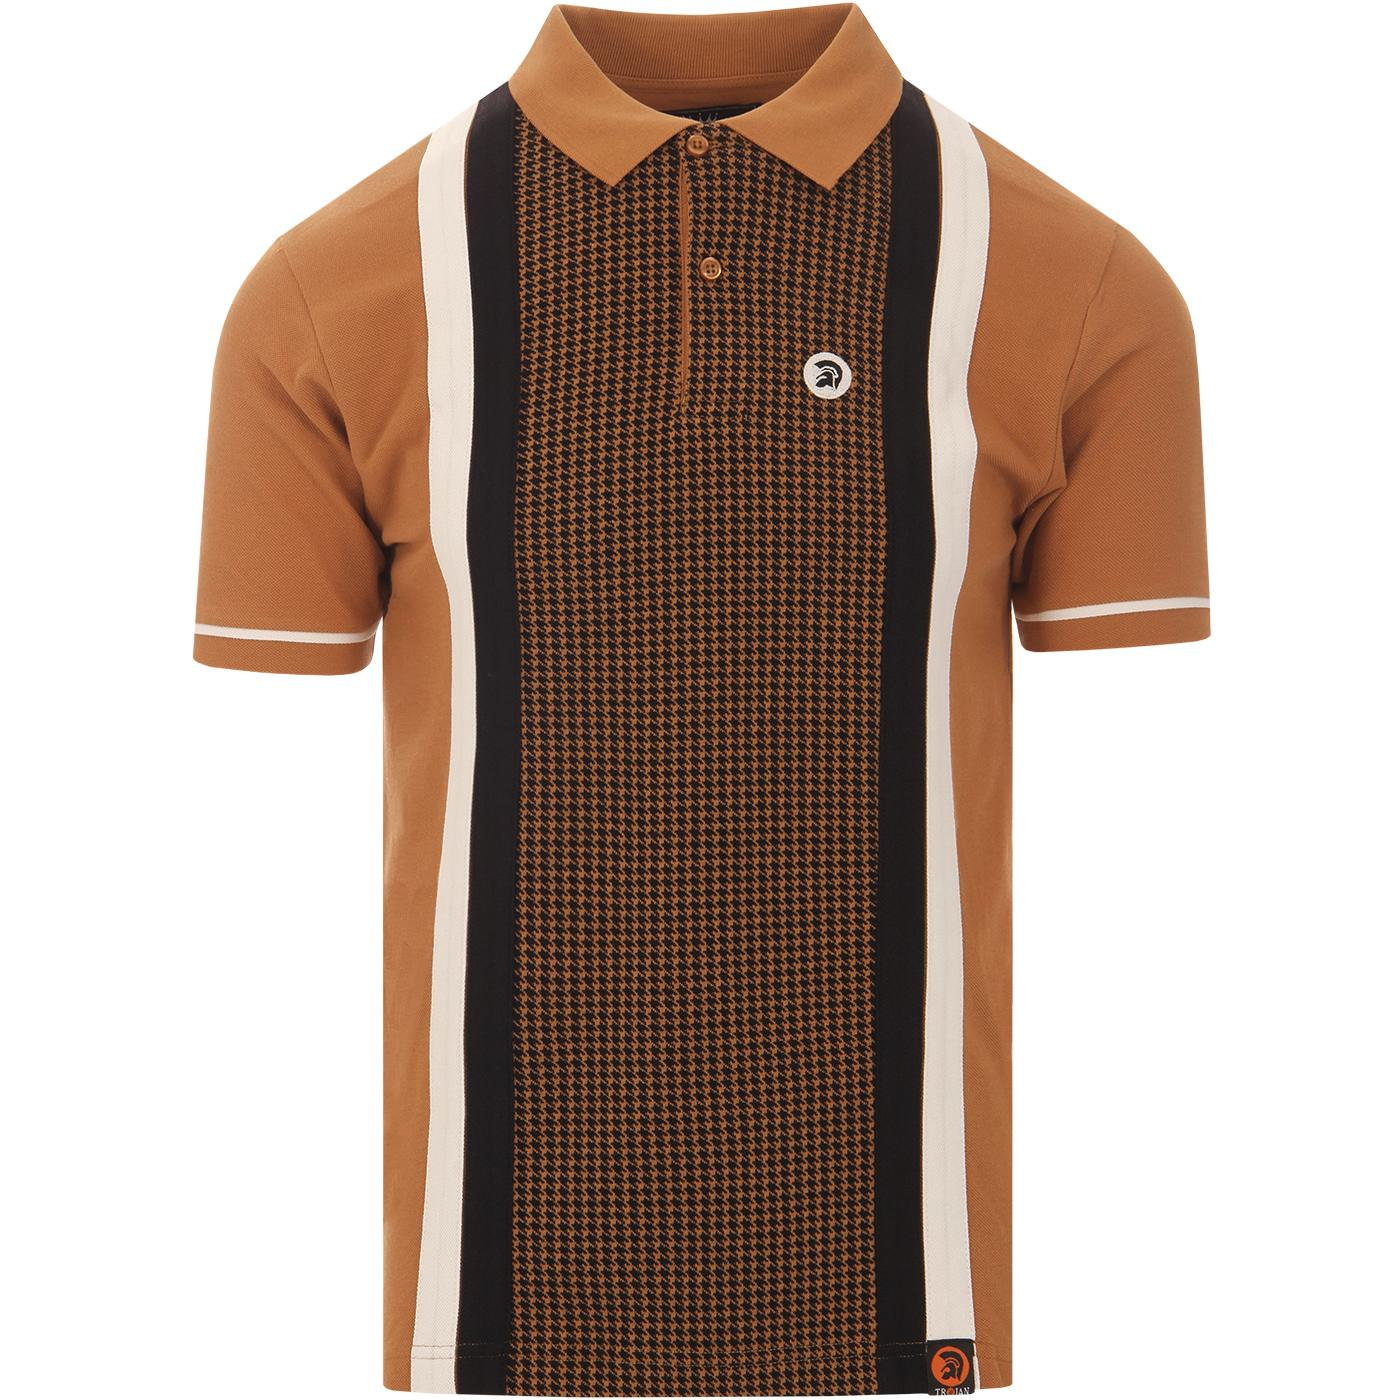 TROJAN RECORDS Mod Cut & Sew Dogtooth Panel Polo T